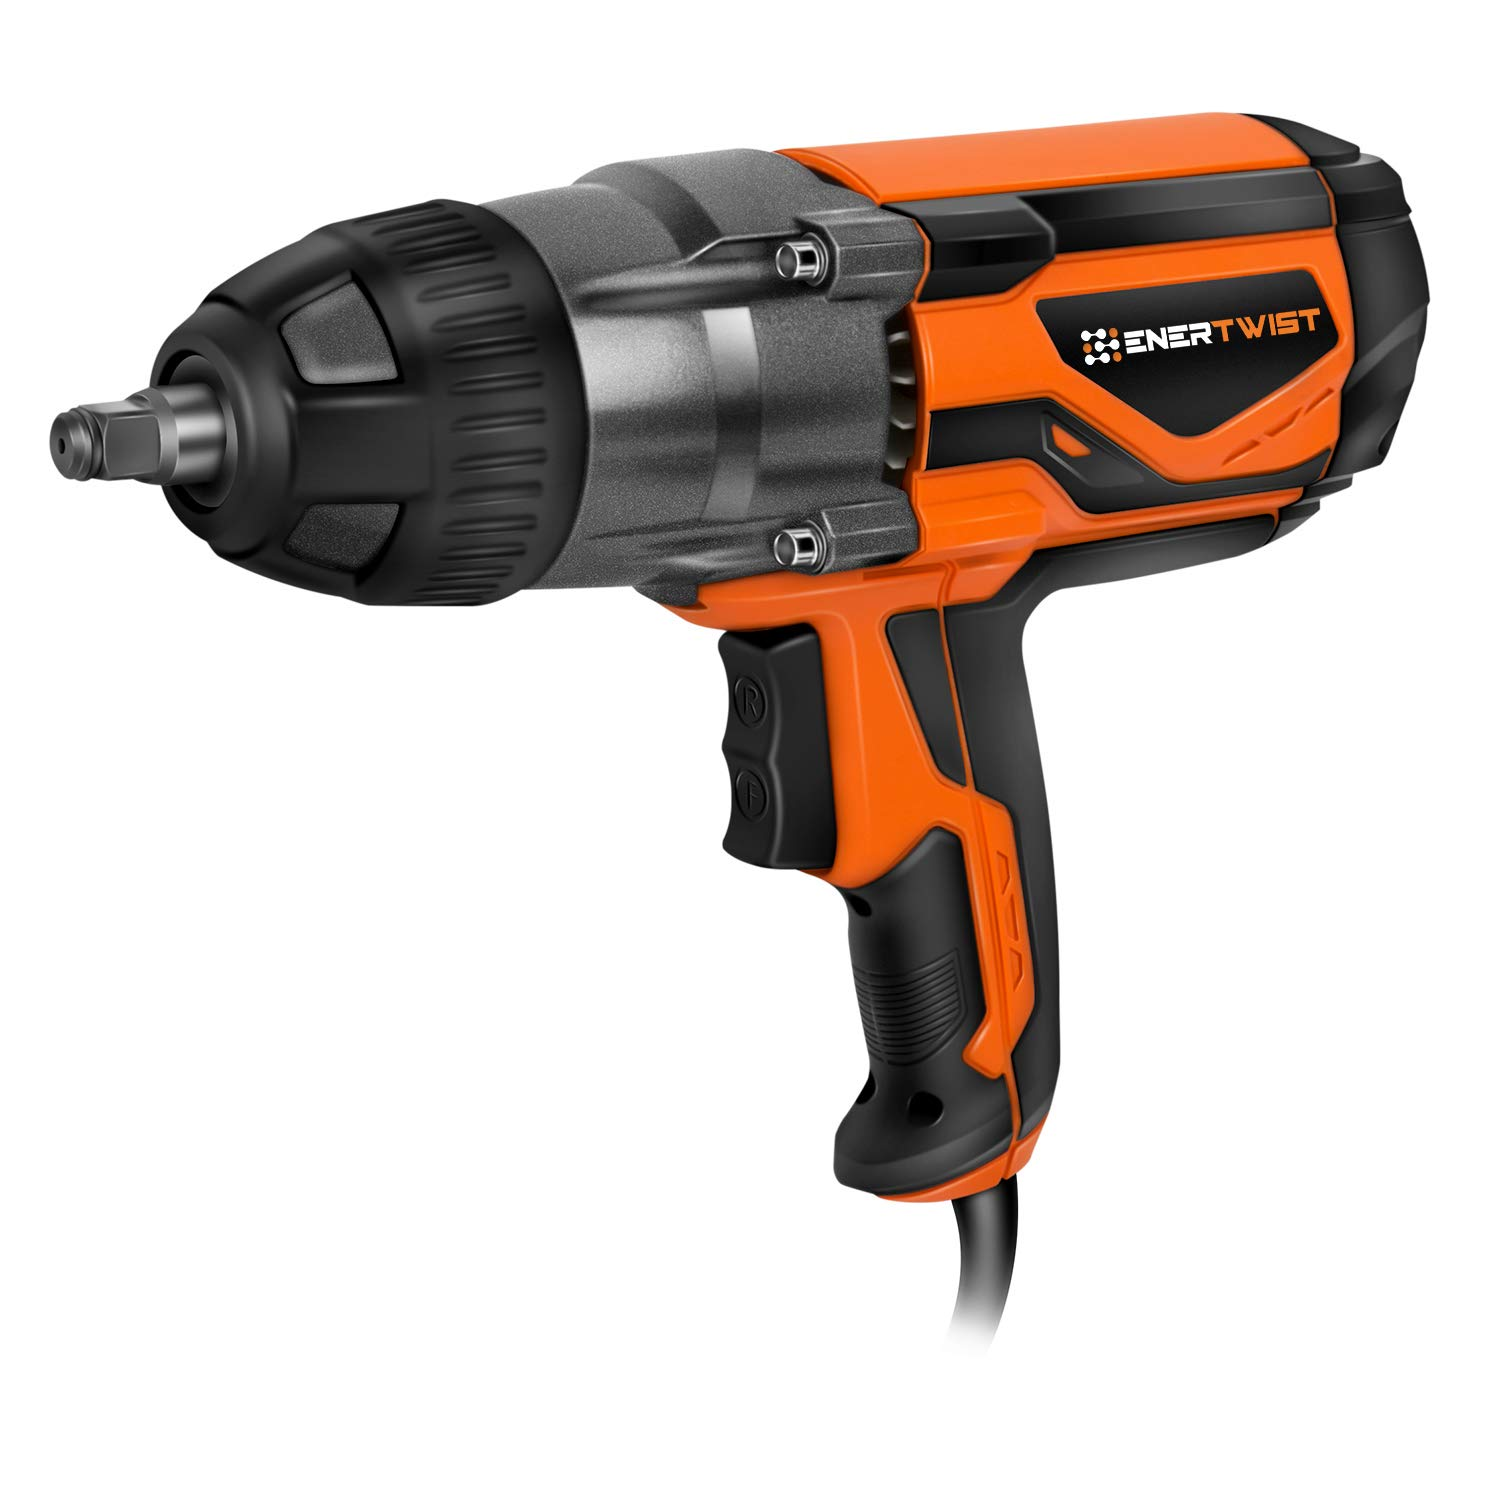 EnerTwist 8.5 Amp 1/2'' Impact Wrench Corded Electric with Hog Ring Anvil, ET-IW-1020